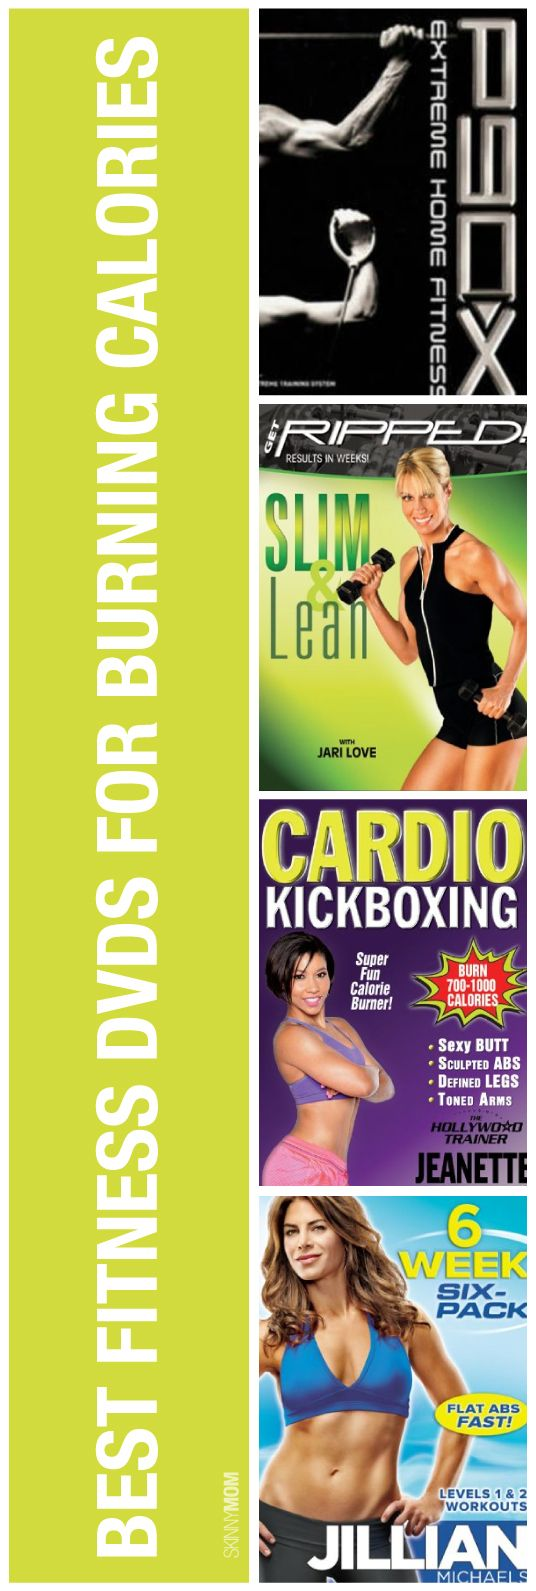 We've compiled some fitness DVDs that we love here at Skinny Mom just for you!